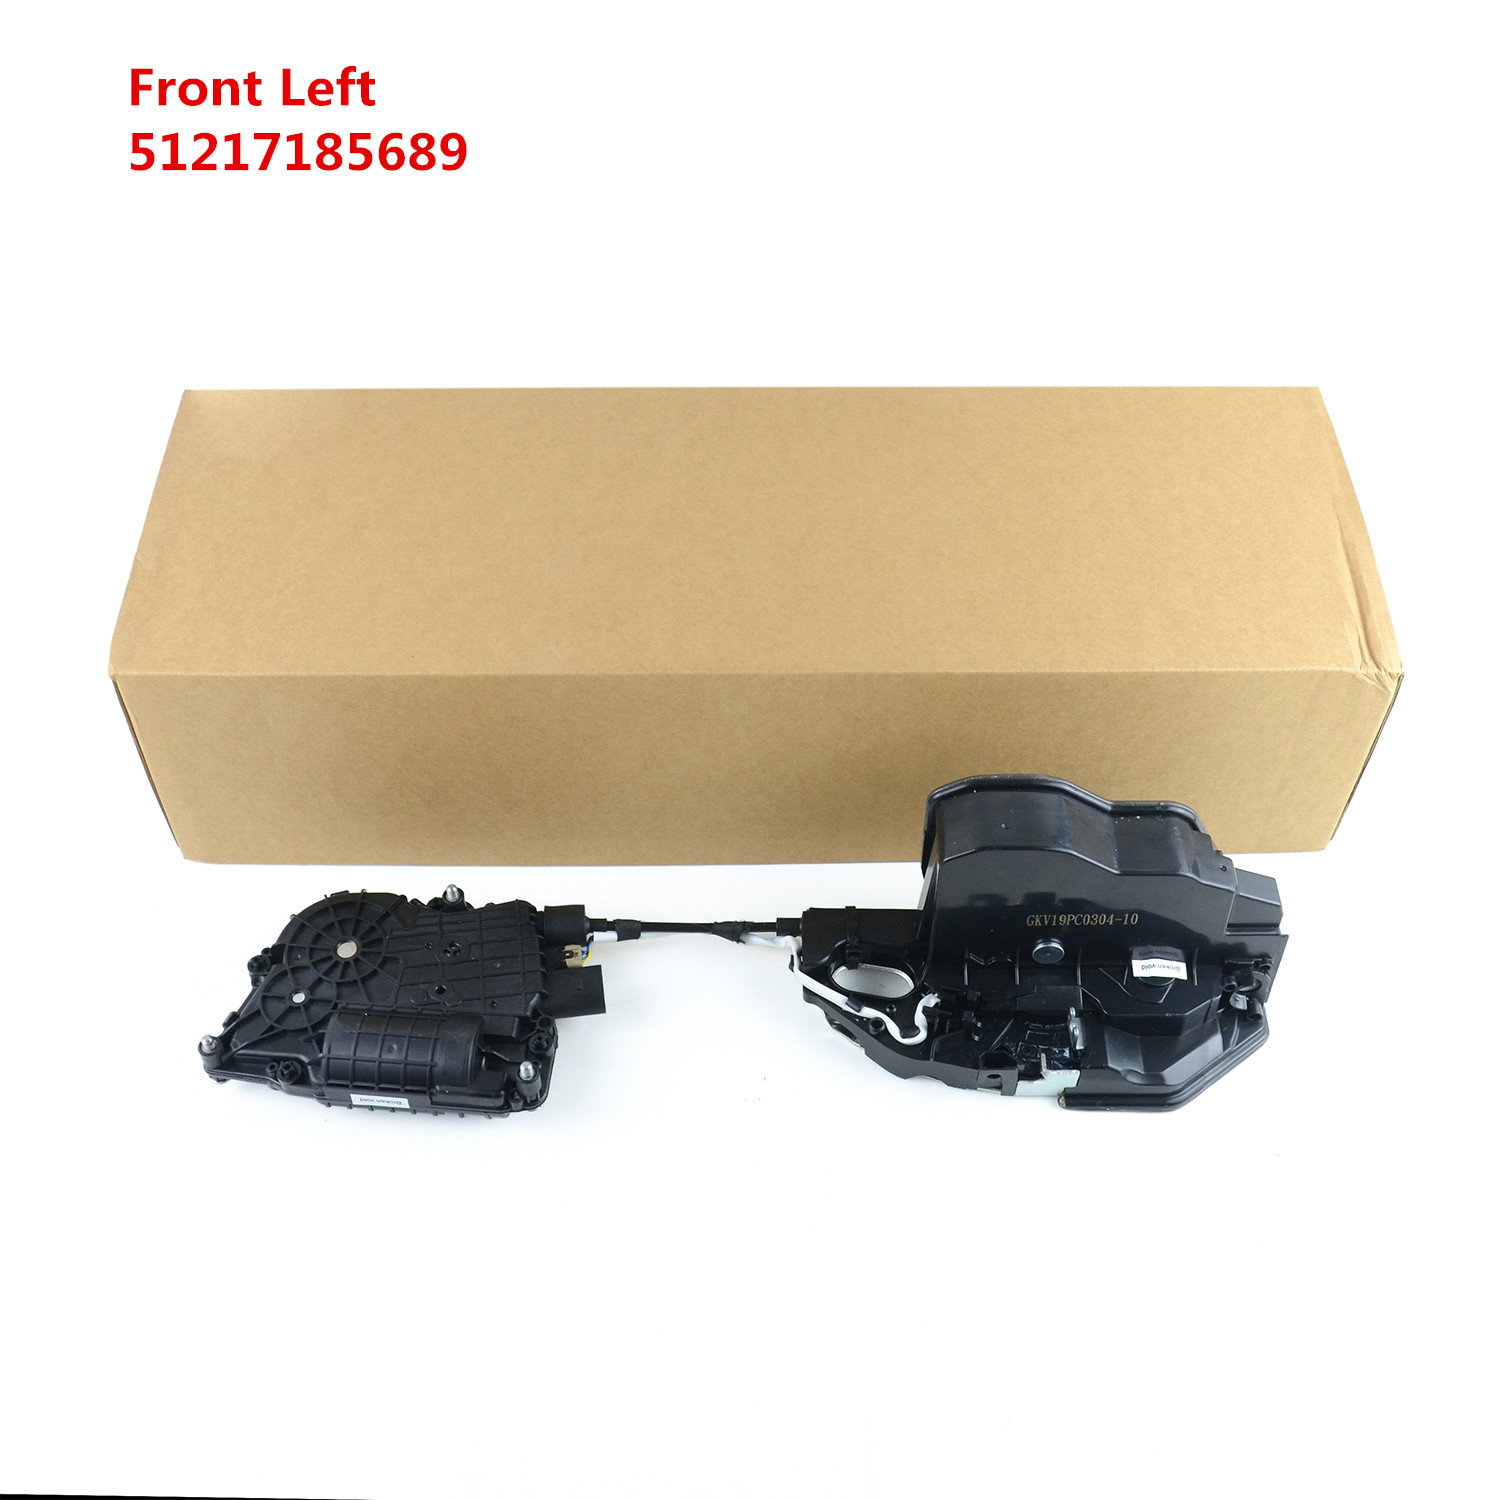 AP03 New 51 21 7 185 689, 51217185689 For BMW F01 F02 F04 F10 Front Left Door Lock Mechanism & Motor Actuator